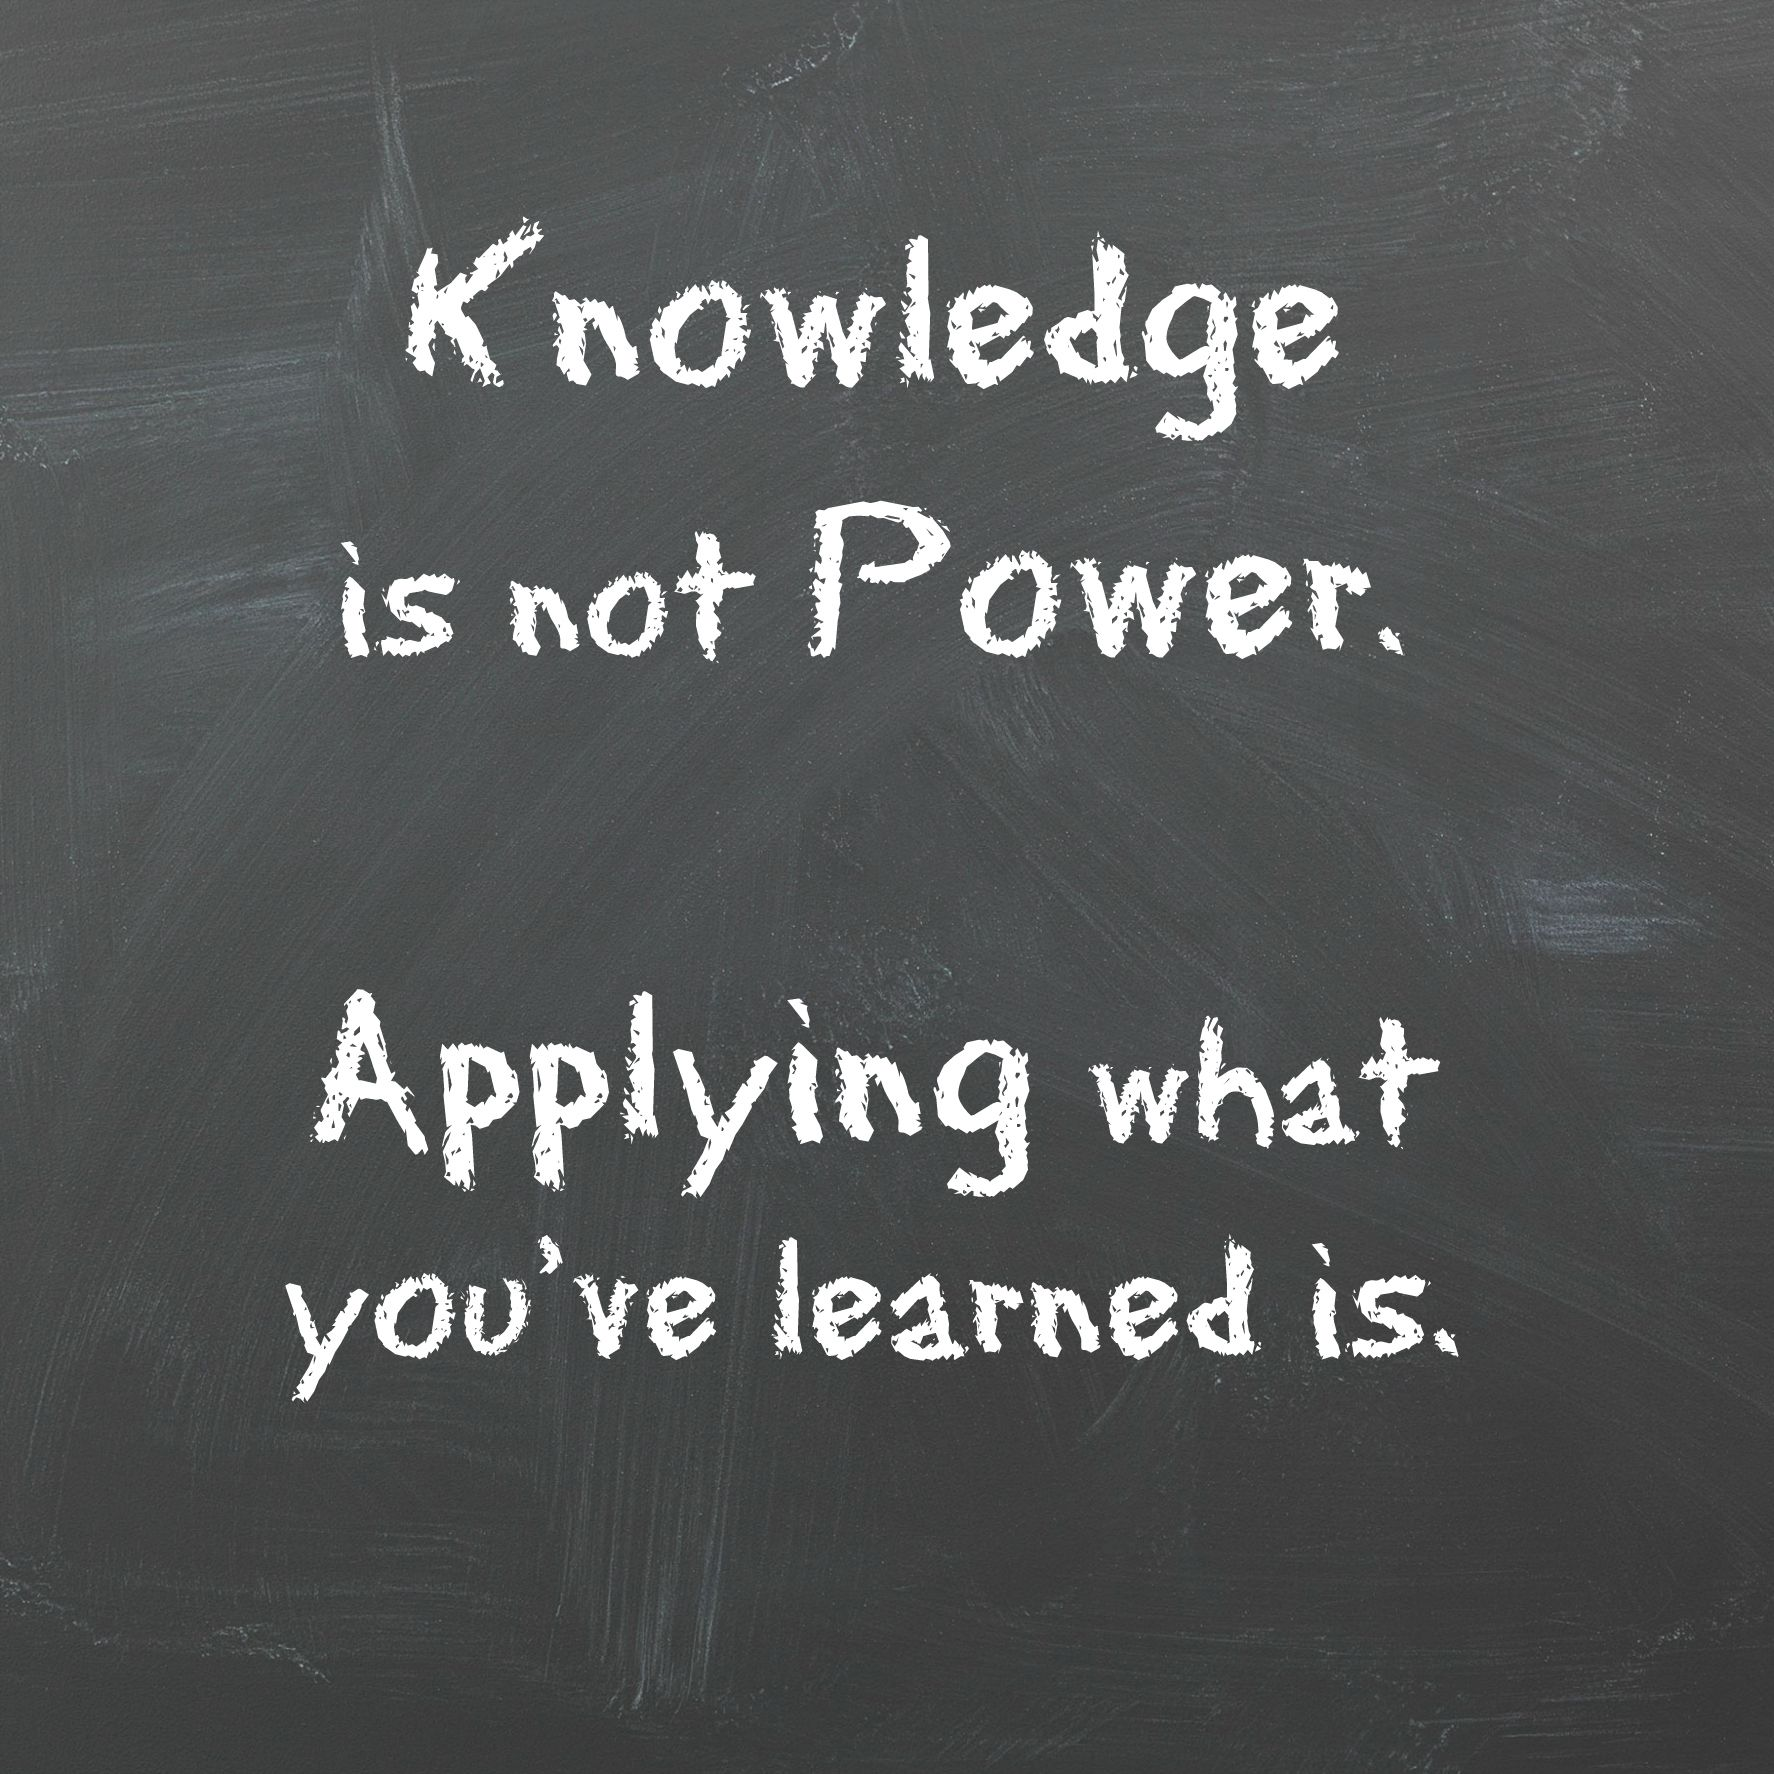 Knowledge Without Action Is Futile...go Ahead And Quit Pinning About  Fitness And Go Do Something About Fitness Right?